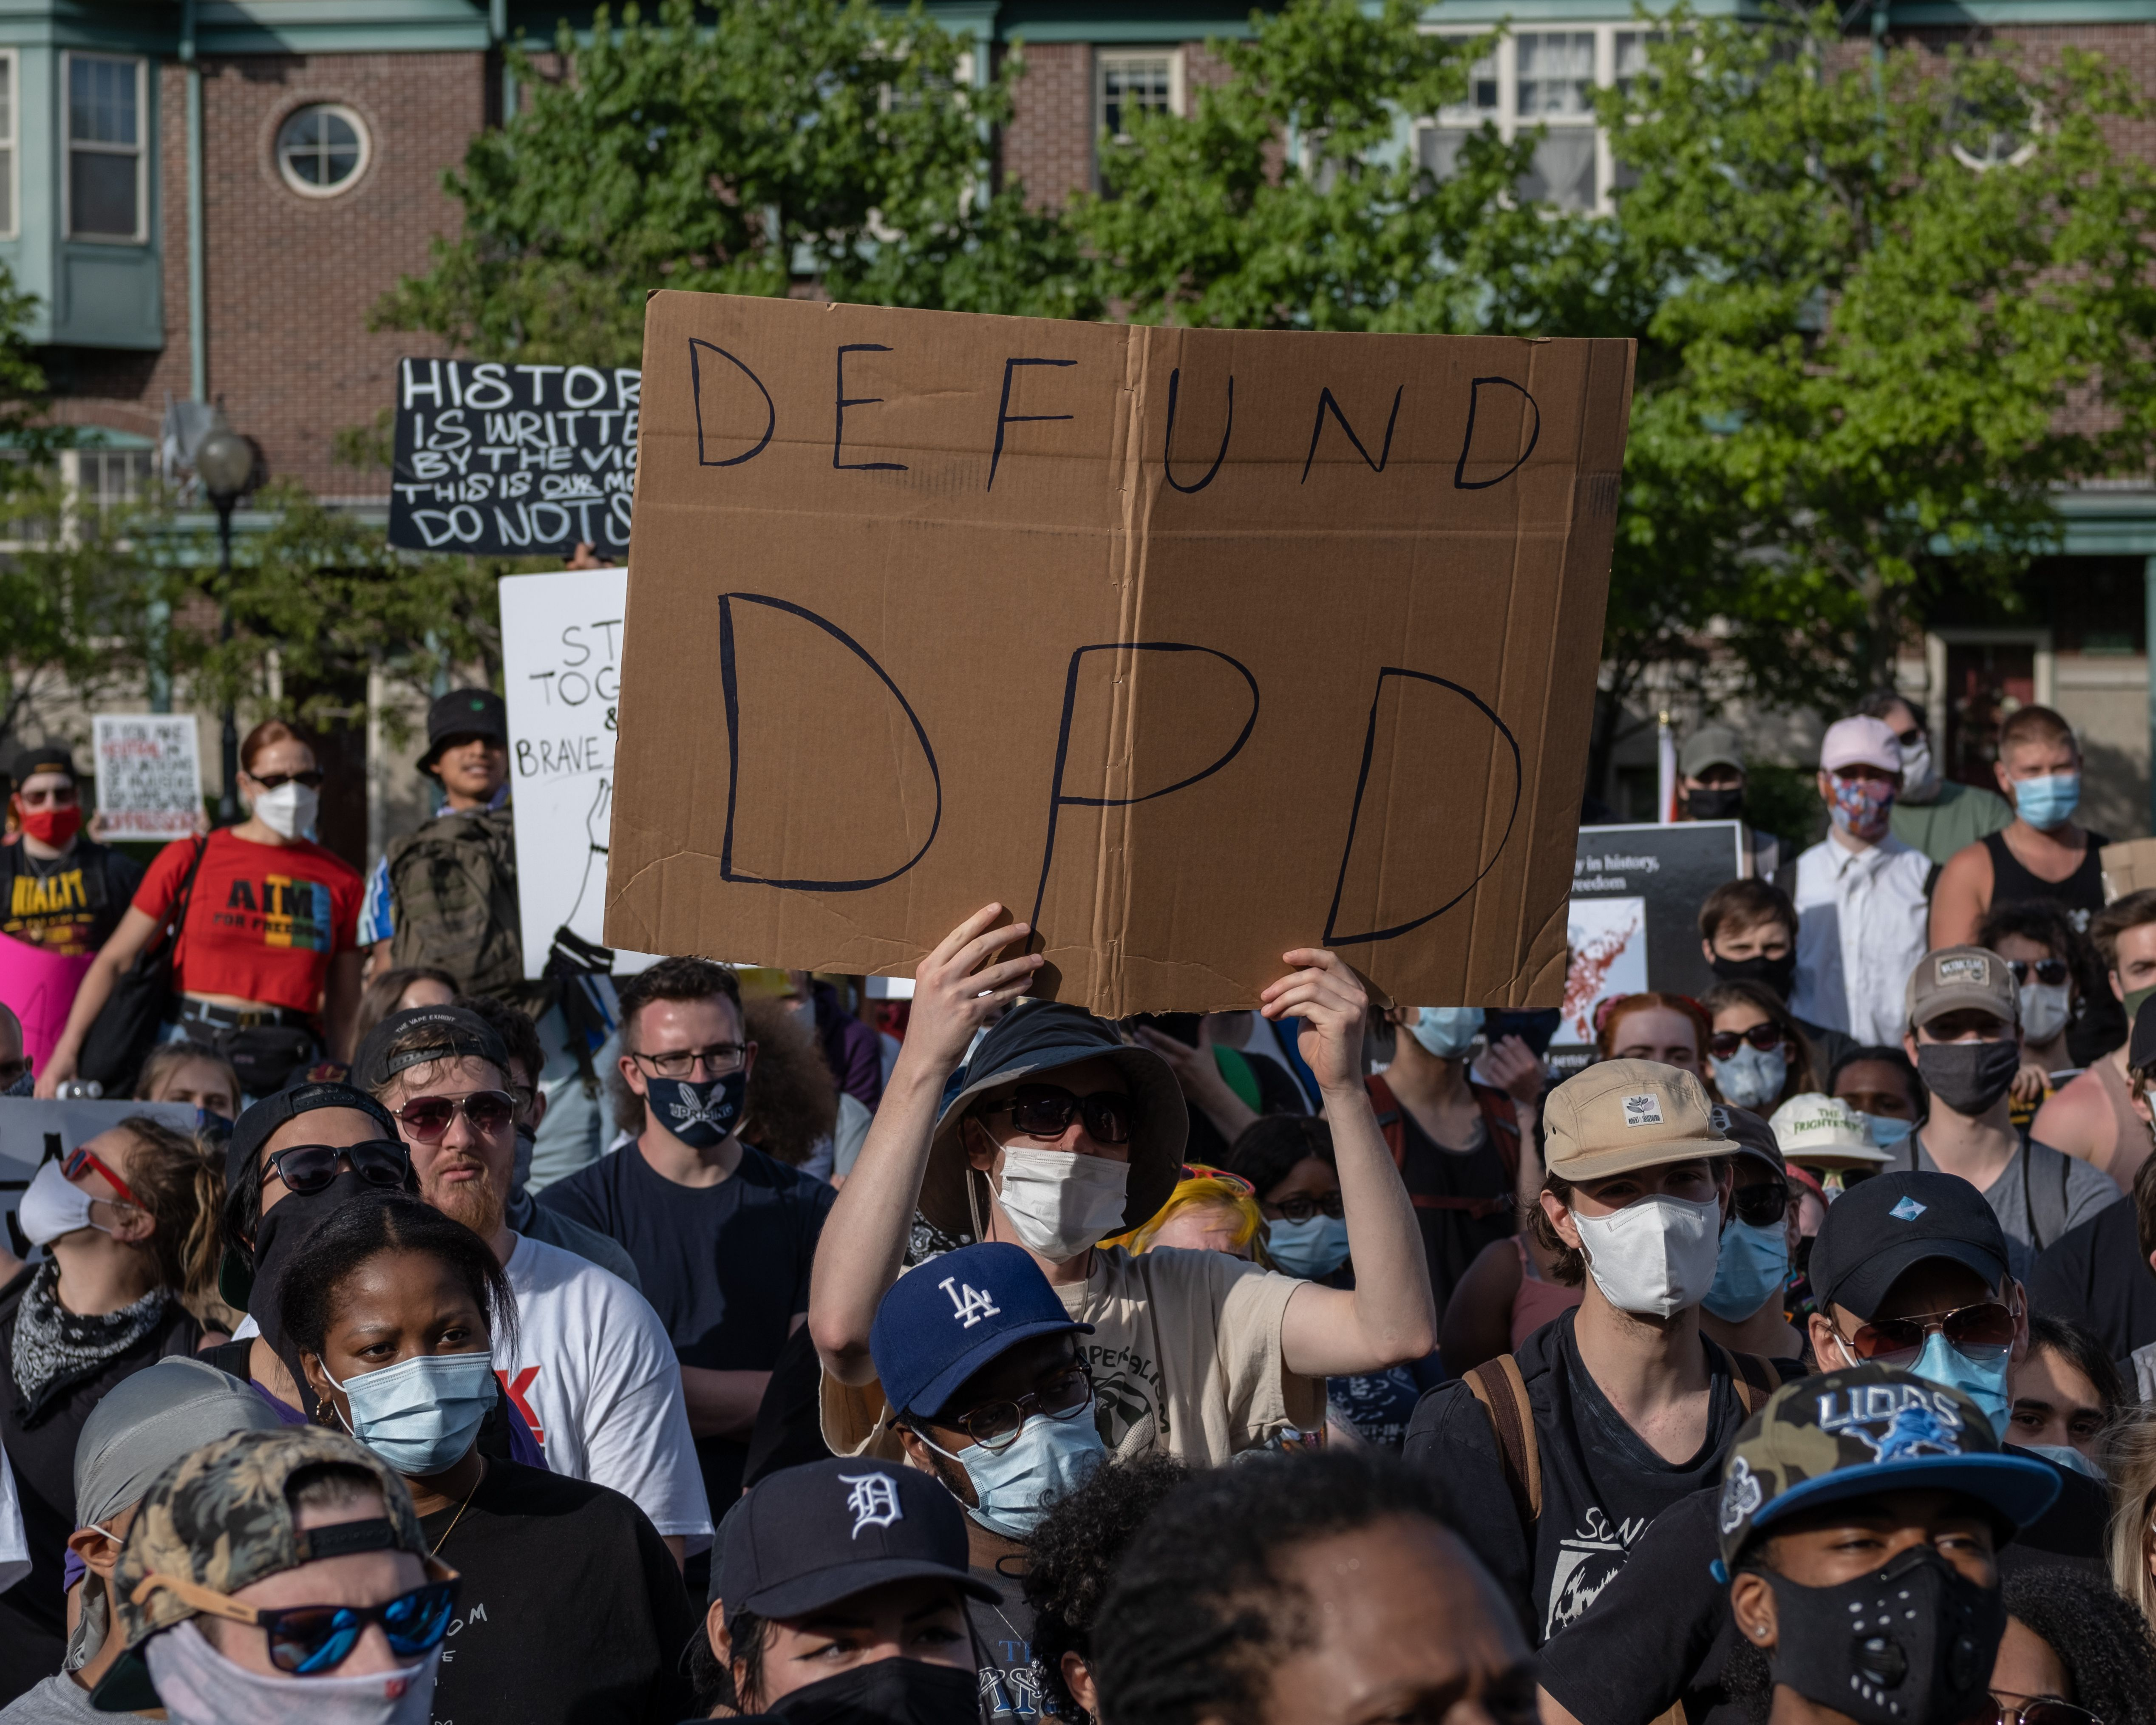 Protesters march against police brutality and in memory of George Floyd in Detroit, Michigan, on June 7, 2020. (SETH HERALD/AFP via Getty Images)